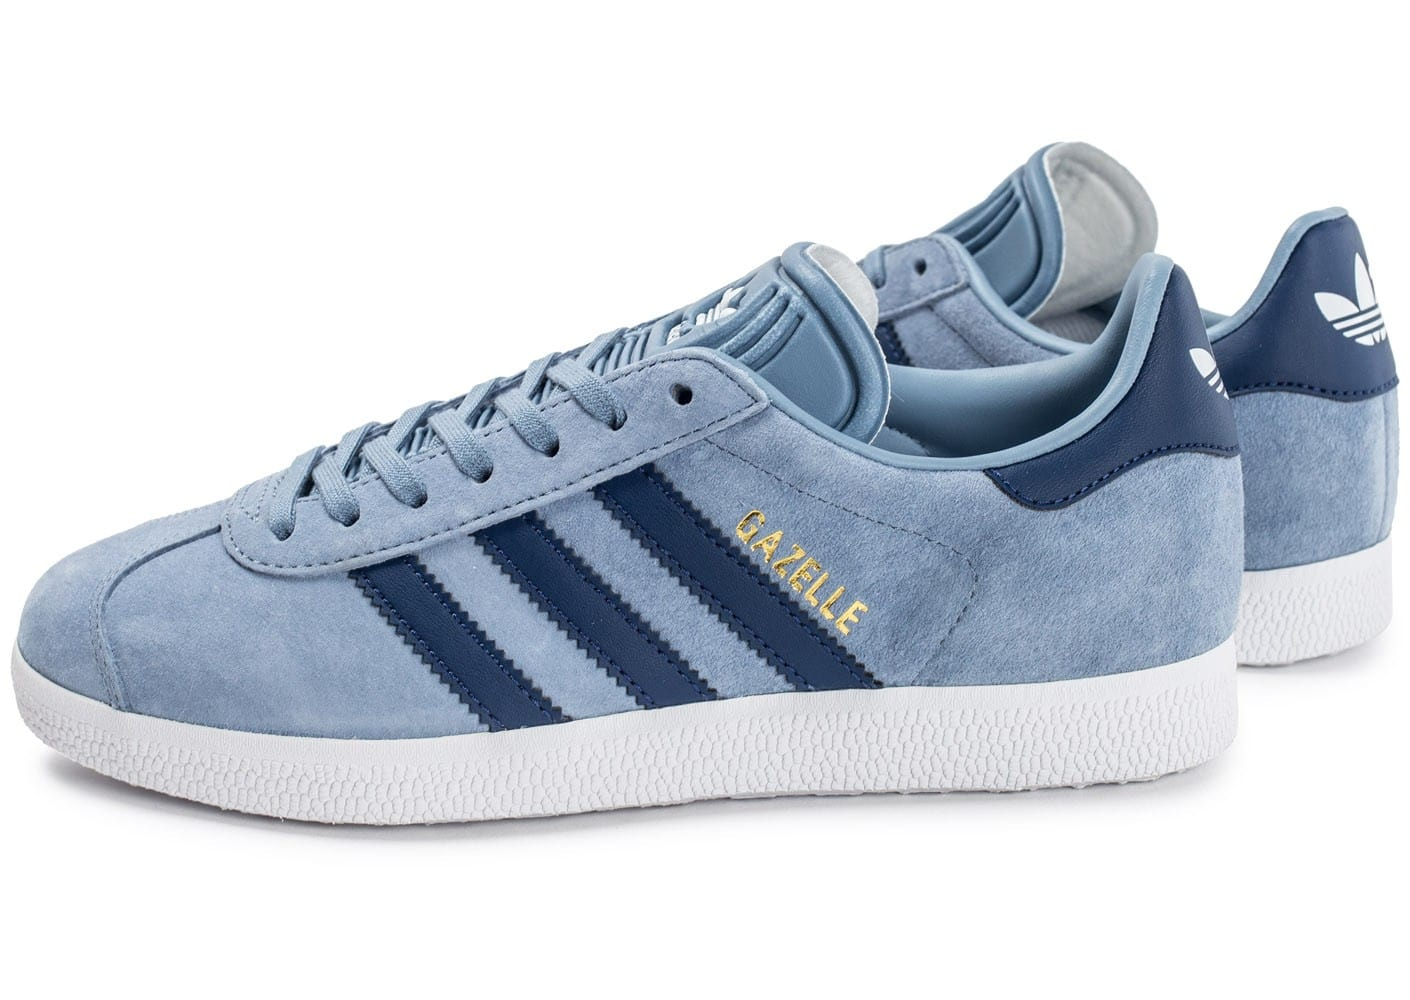 adidas gazelle w bleue chaussures adidas chausport. Black Bedroom Furniture Sets. Home Design Ideas